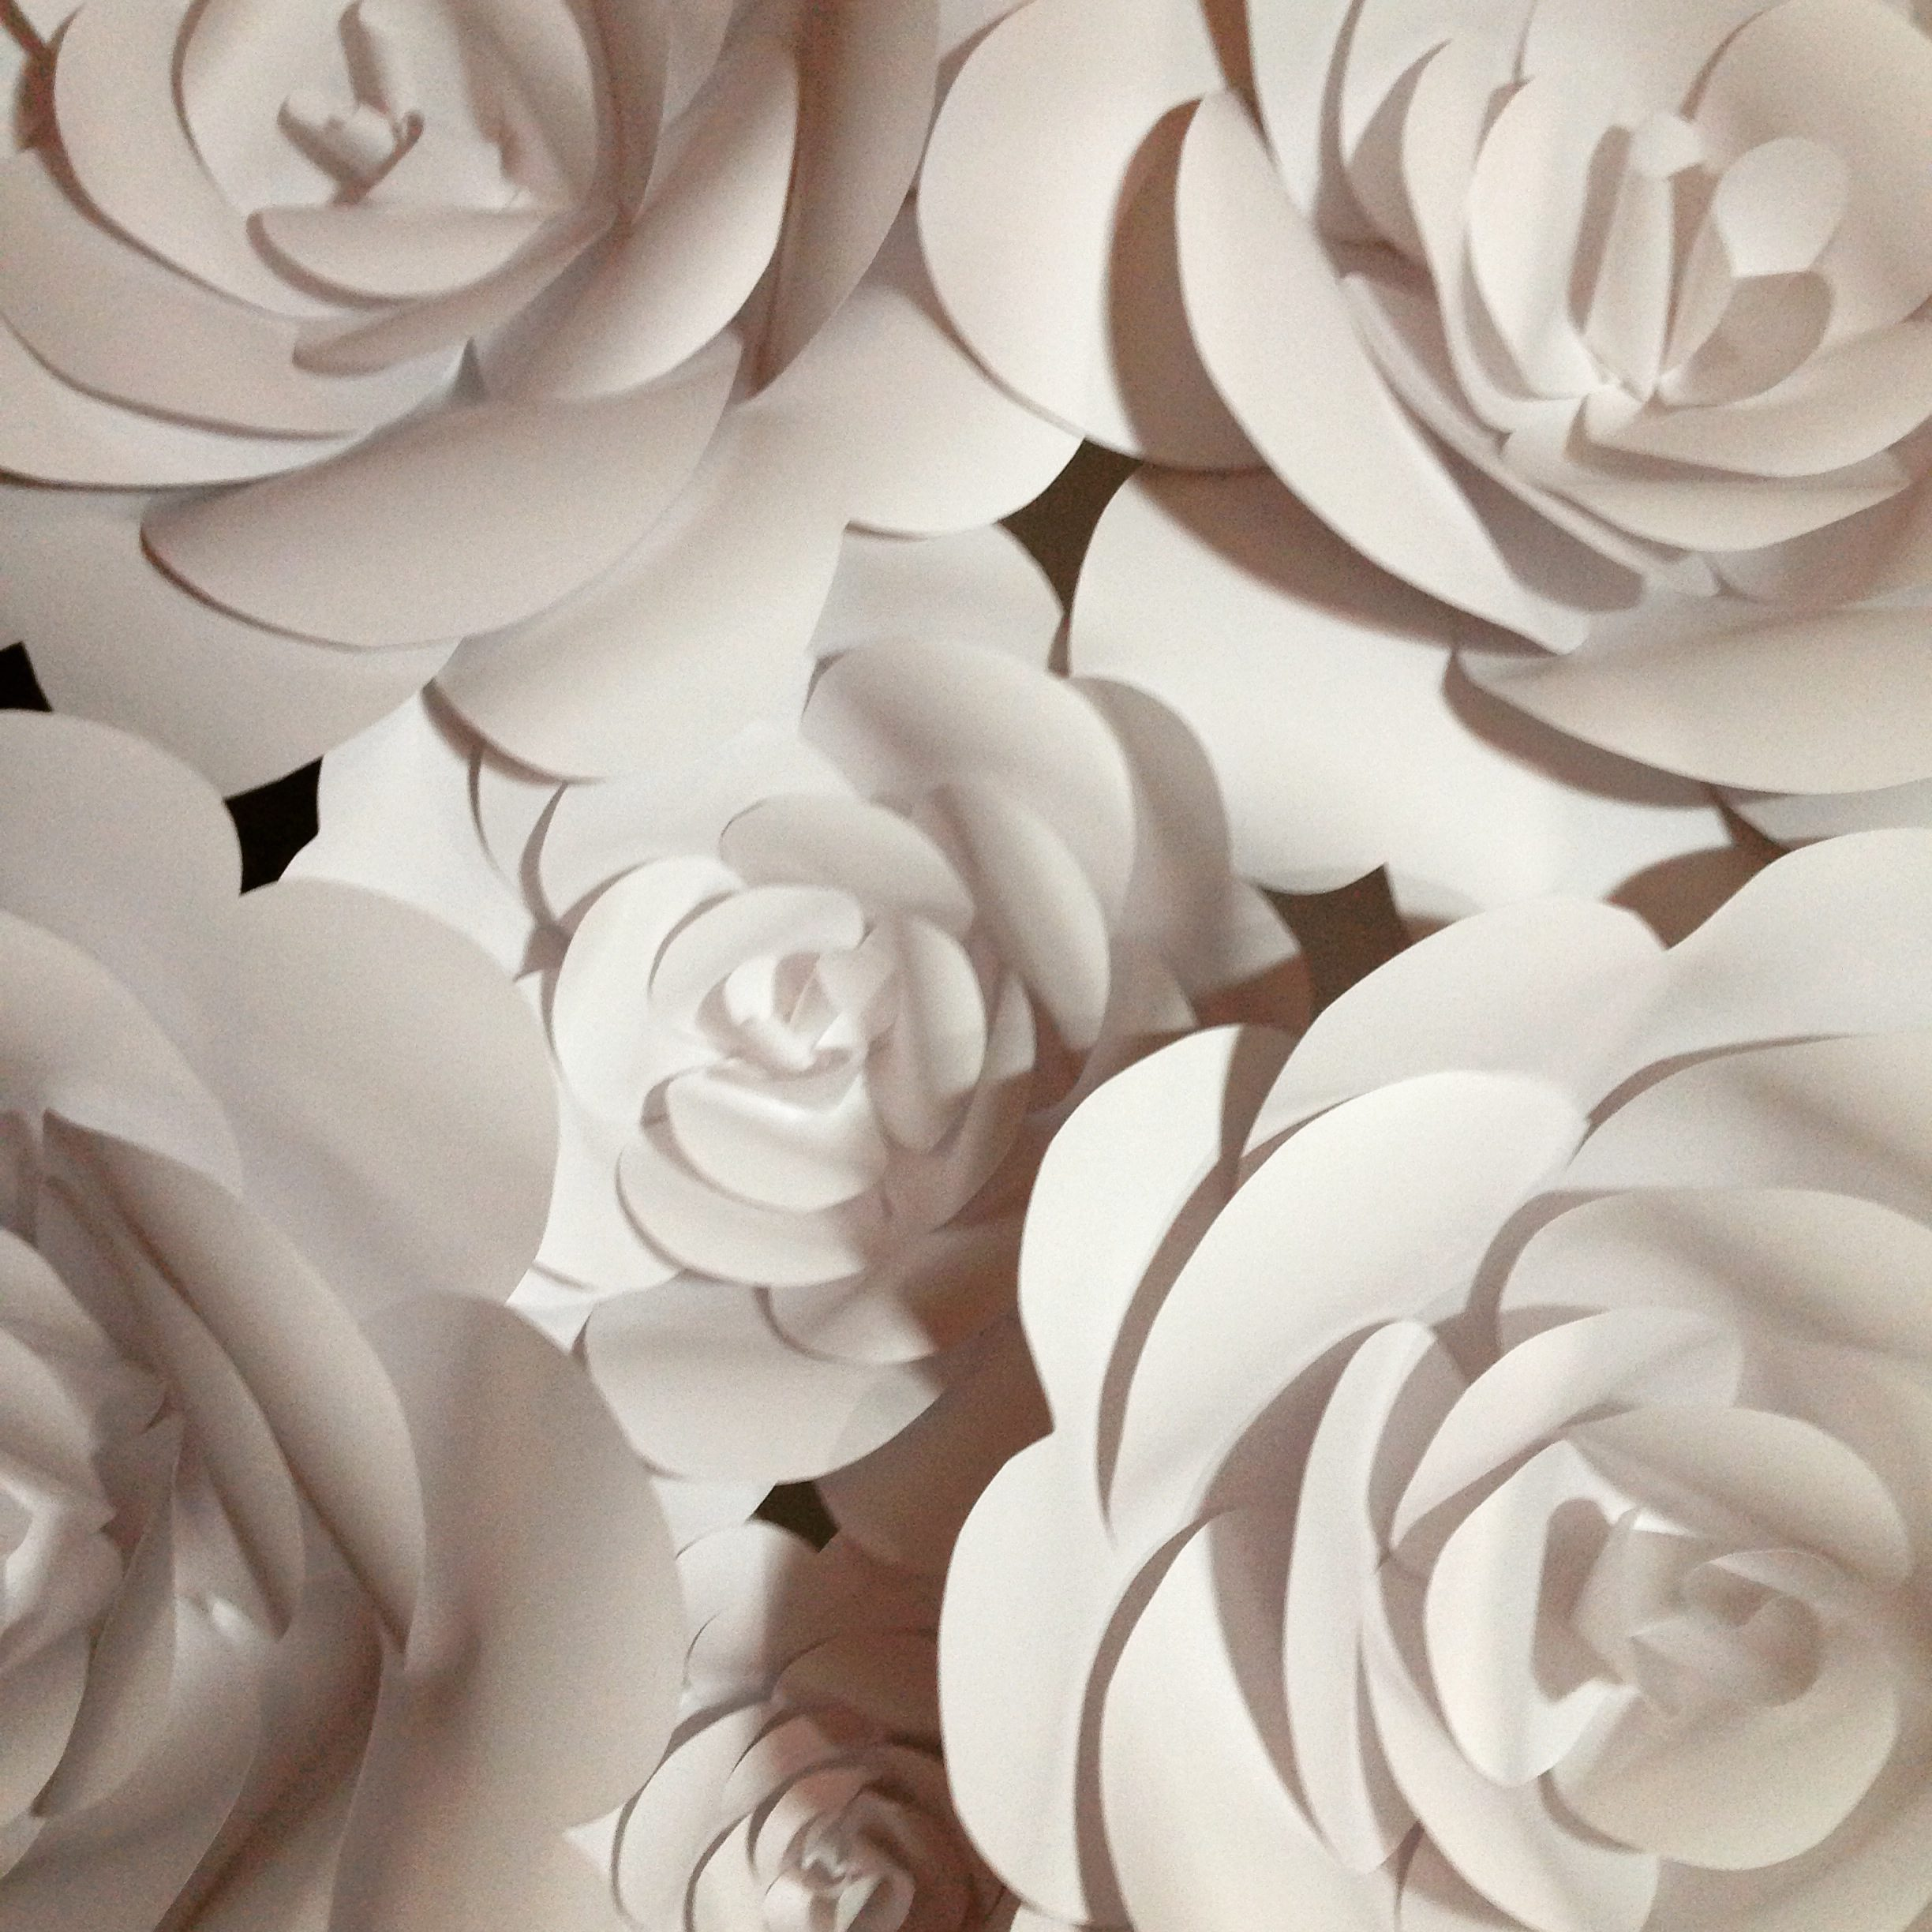 3D Paper flower wonder wall collection and sculptures Art People